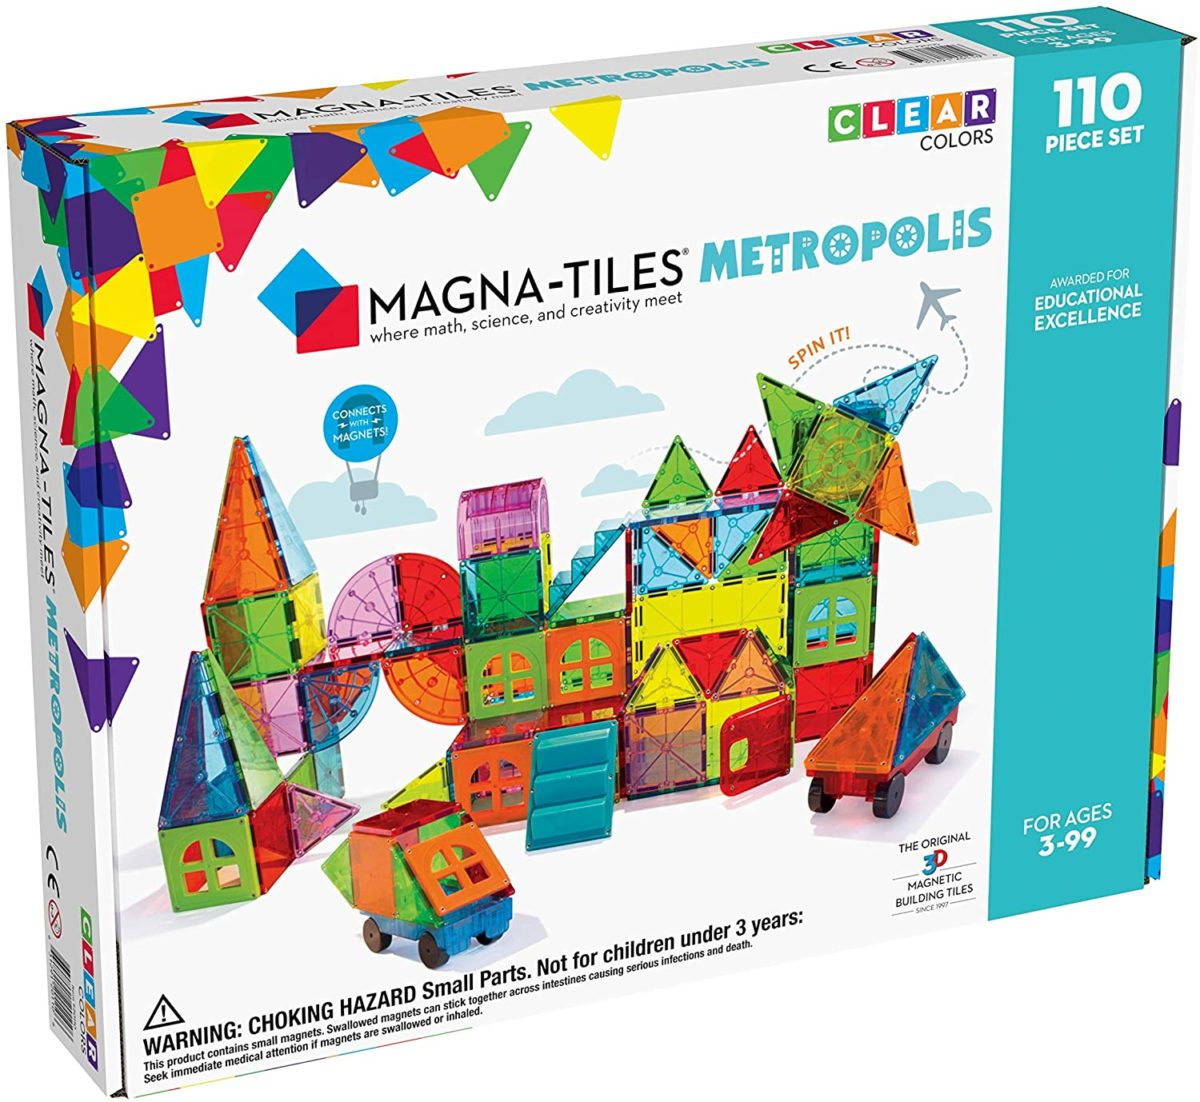 top 35 toys of 2020 to gift for your nieces and nephews from amazon